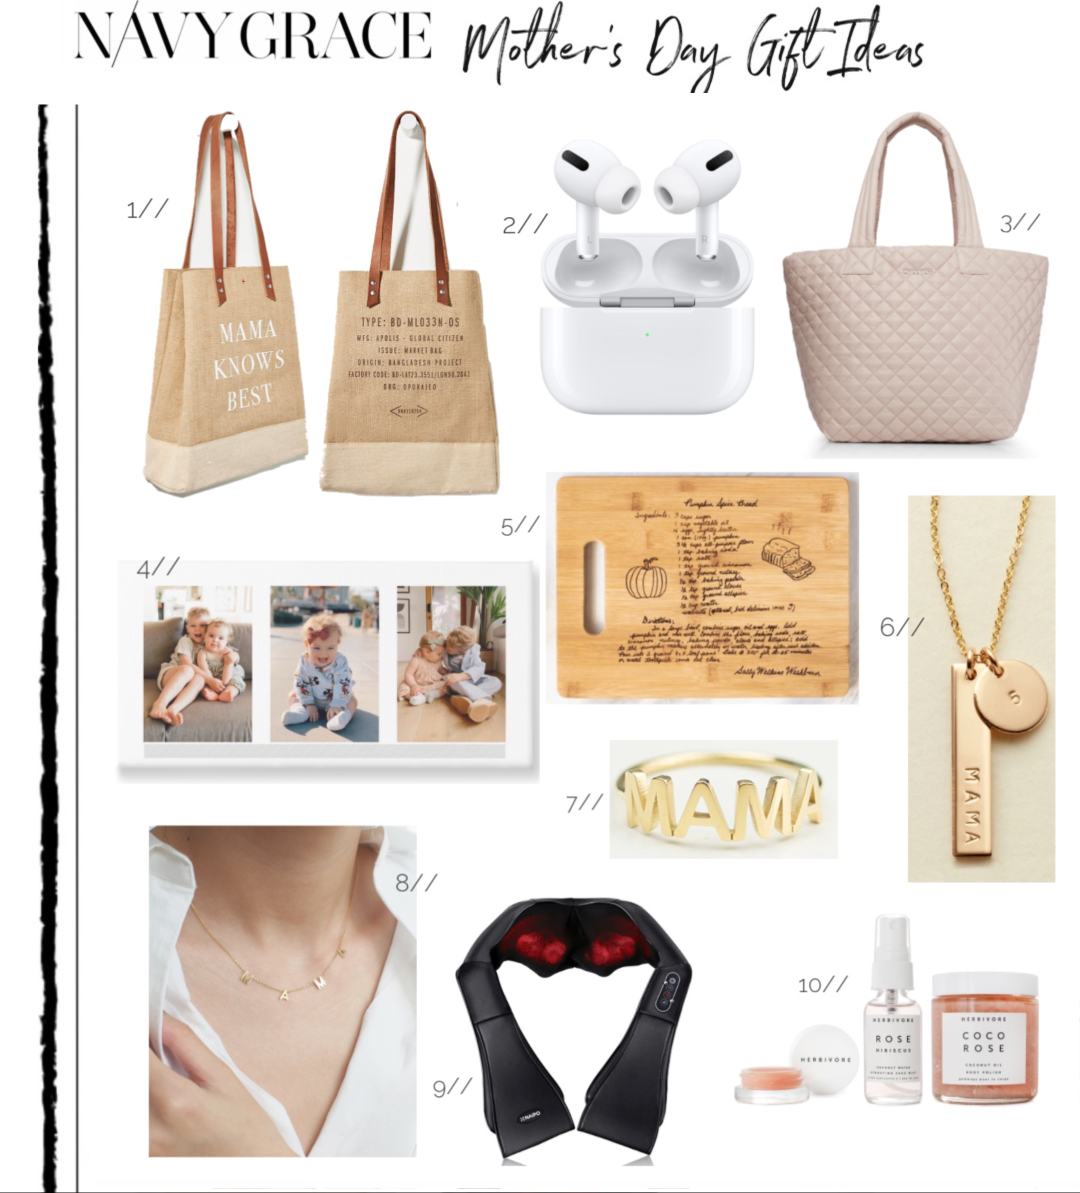 TOP 10 UNIQUE MOTHER'S DAY GIFTS TO SEND featured by top San Francisco lifestyle blog, Navy Grace.